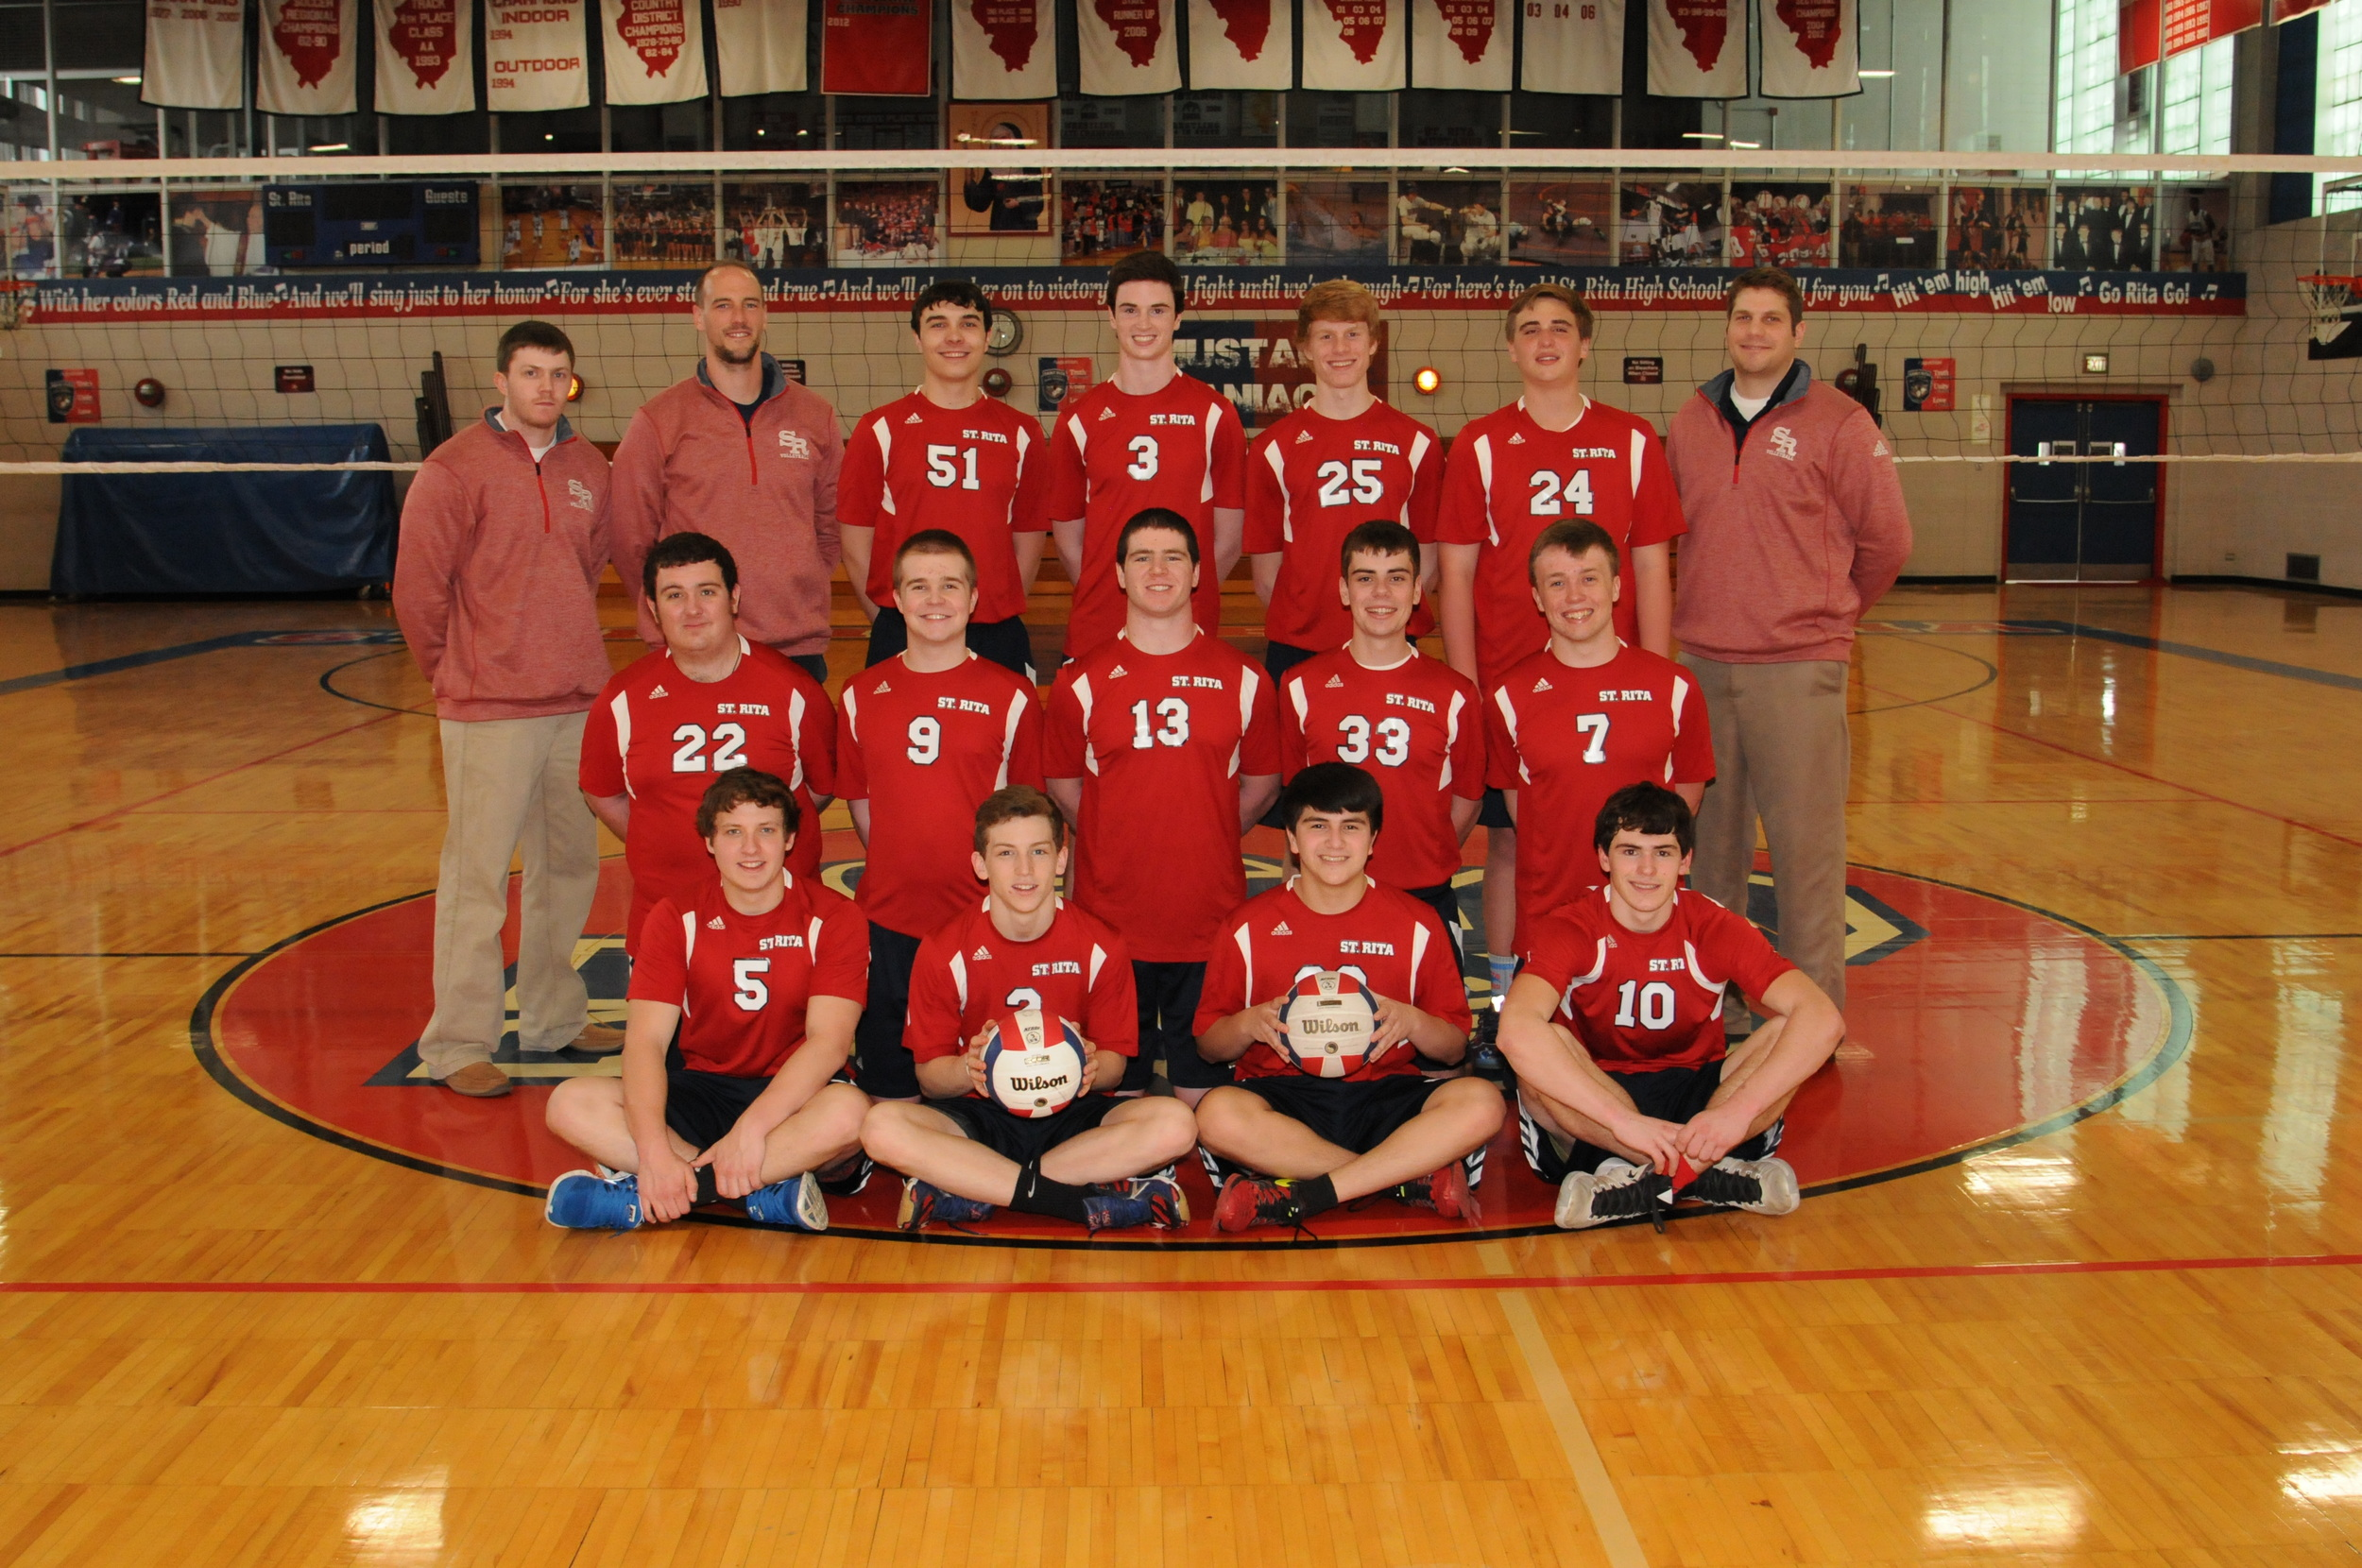 The 2016 St. Rita Varsity Volleyball Team - Co-Champions of the Chicago Catholic League